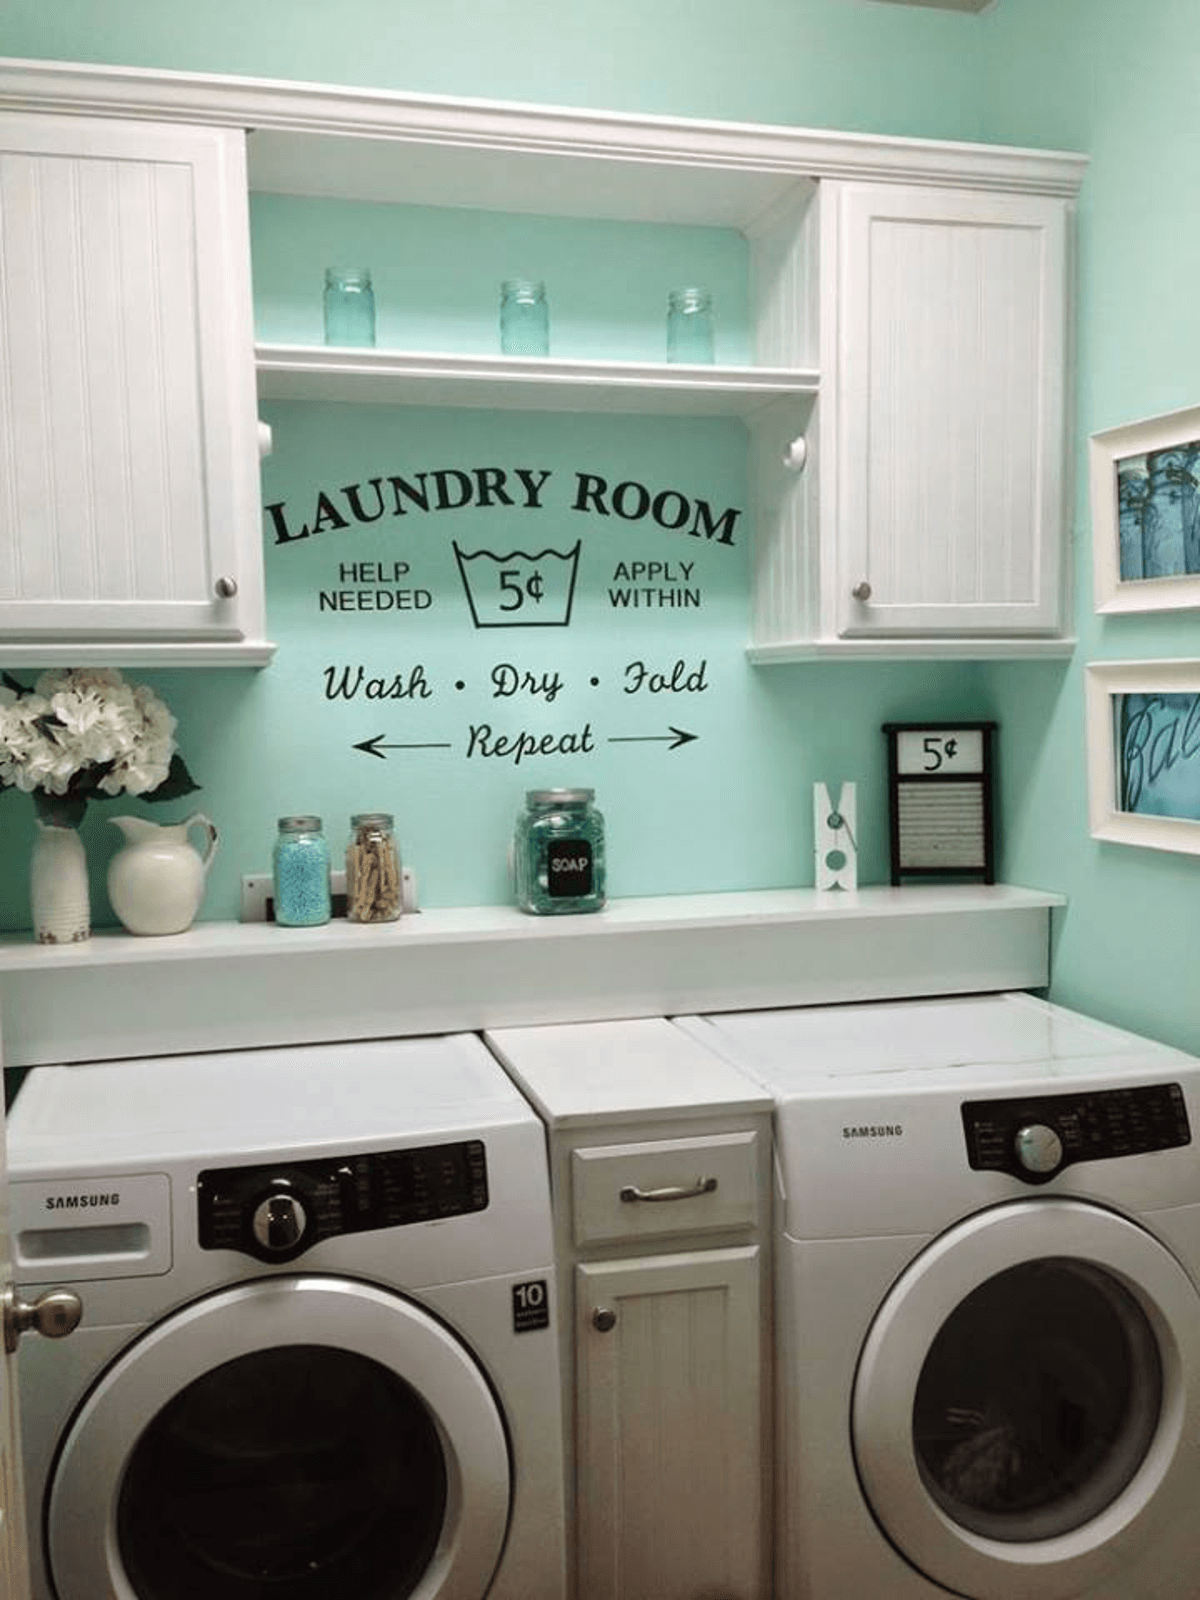 Rustic Retro Laundry Room Concept